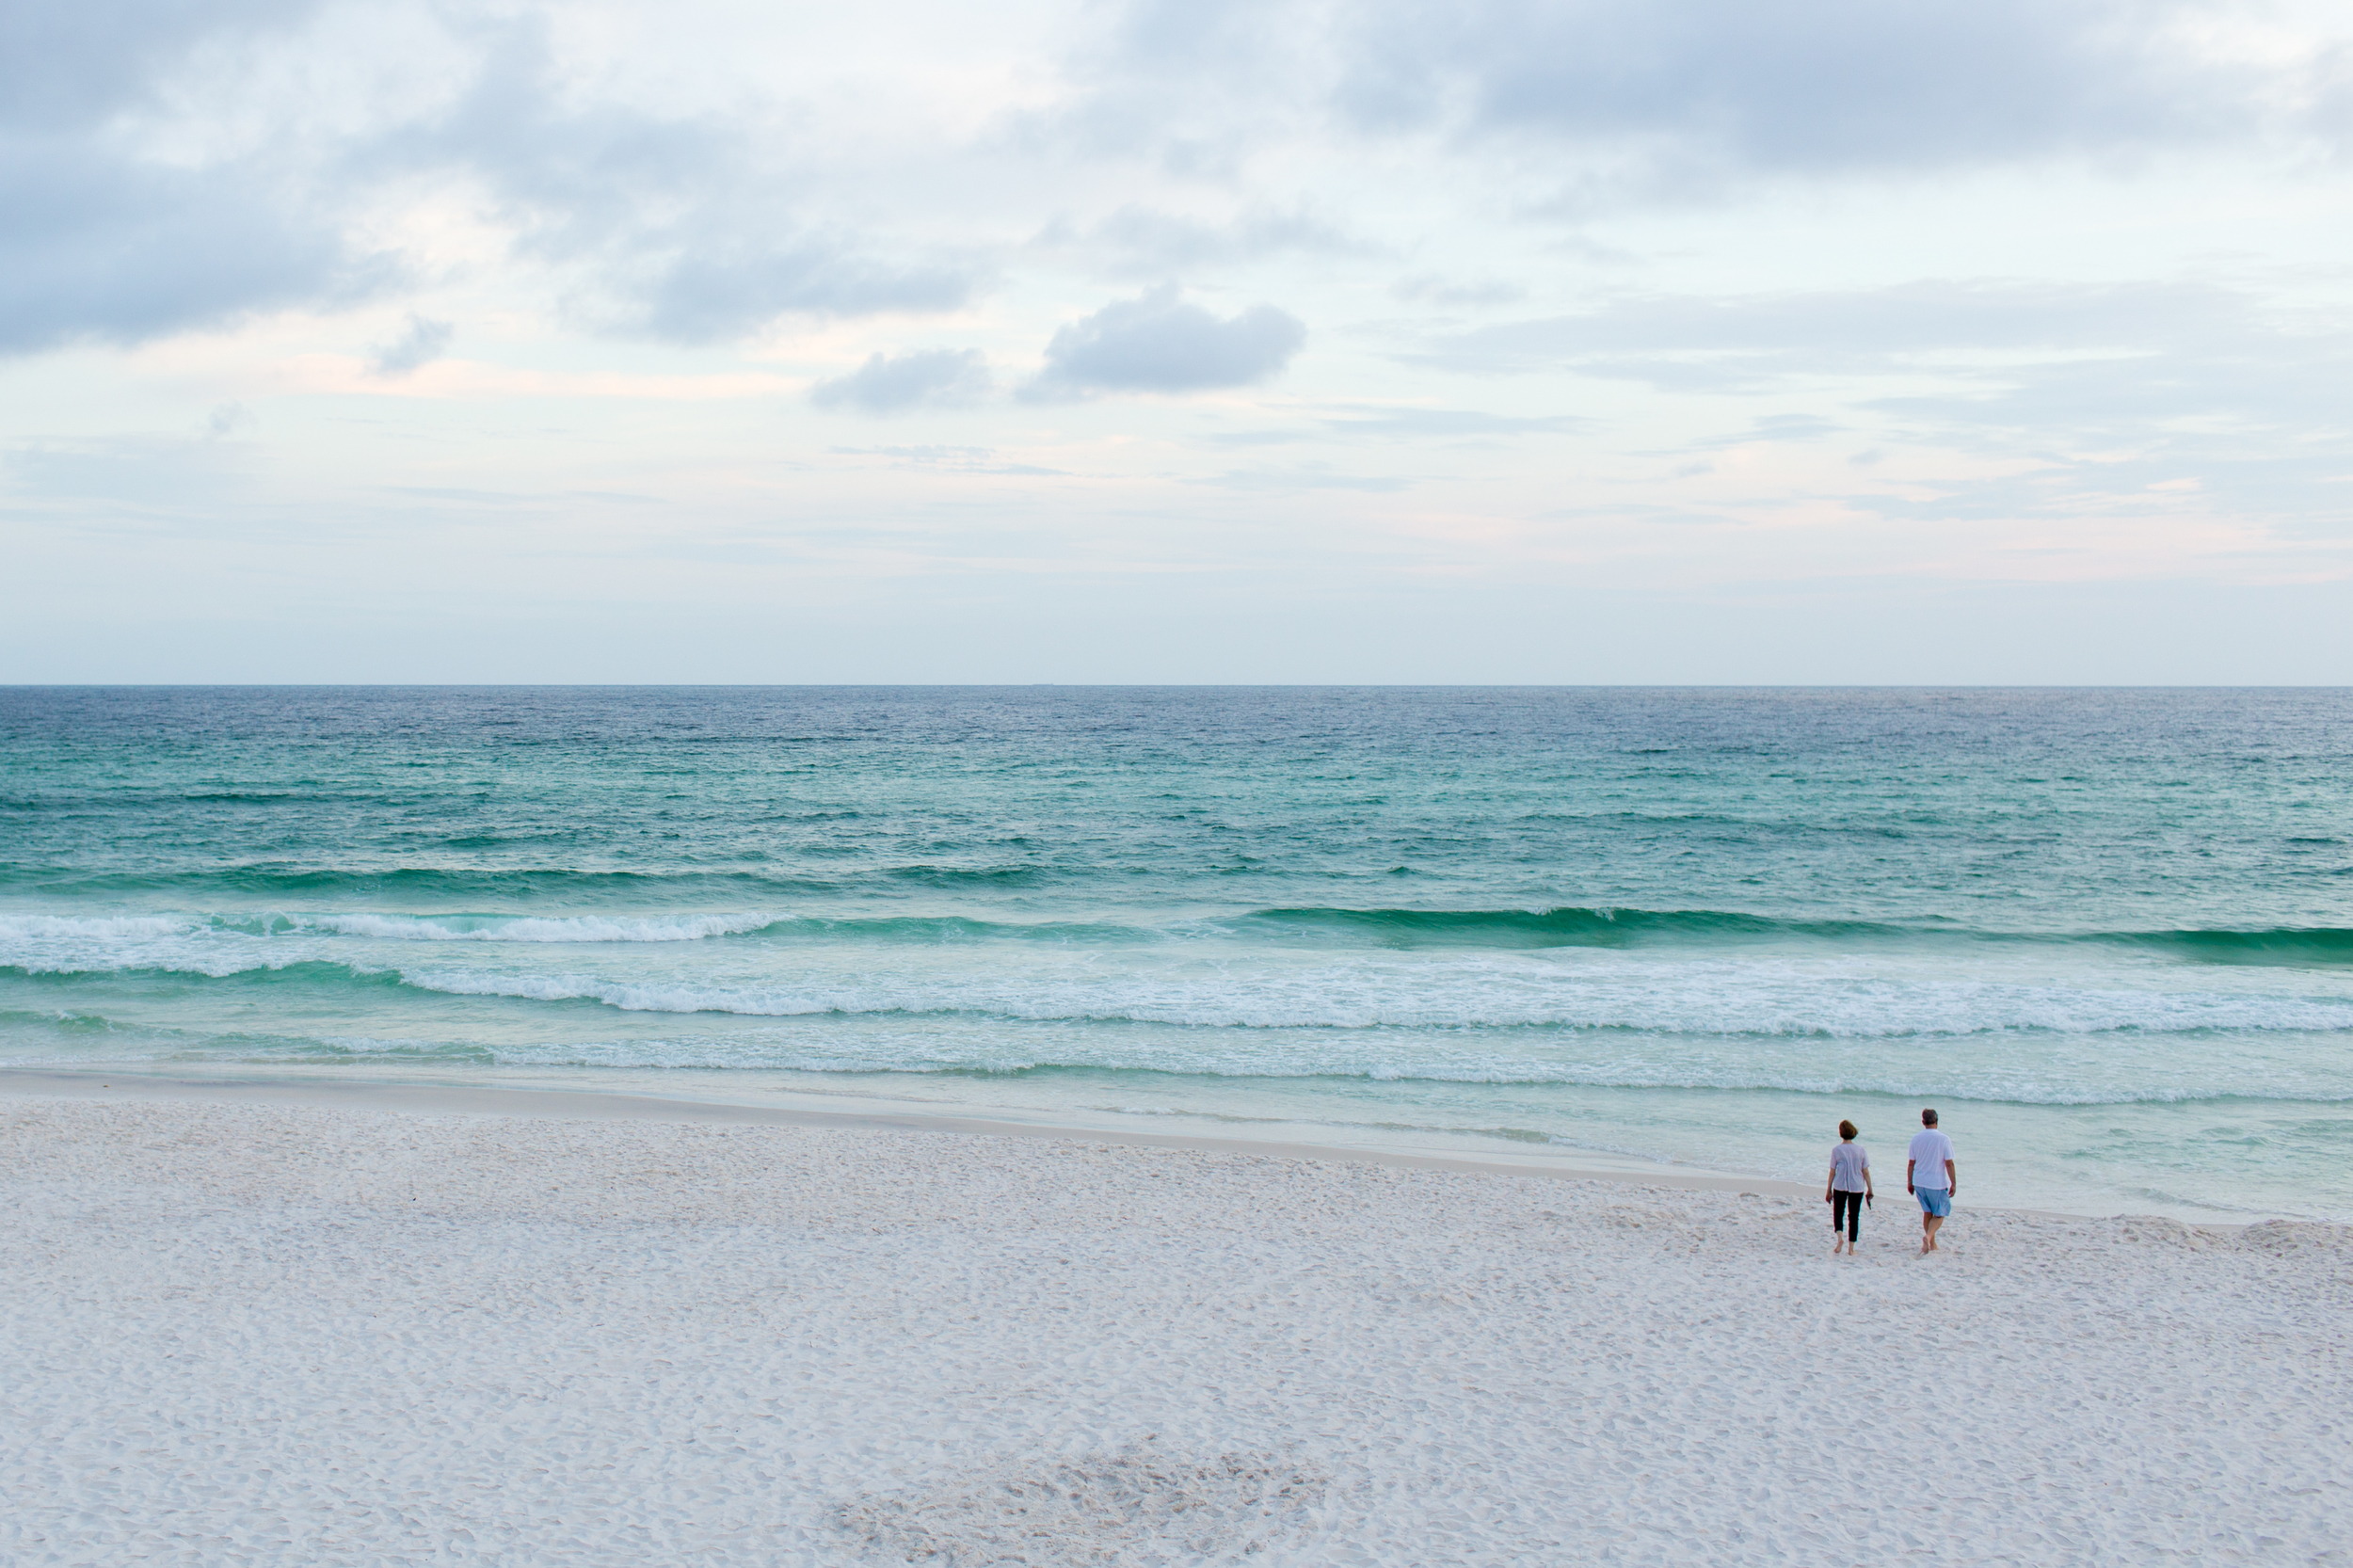 Seaside, Florida beach (Uninvented Colors Photography)